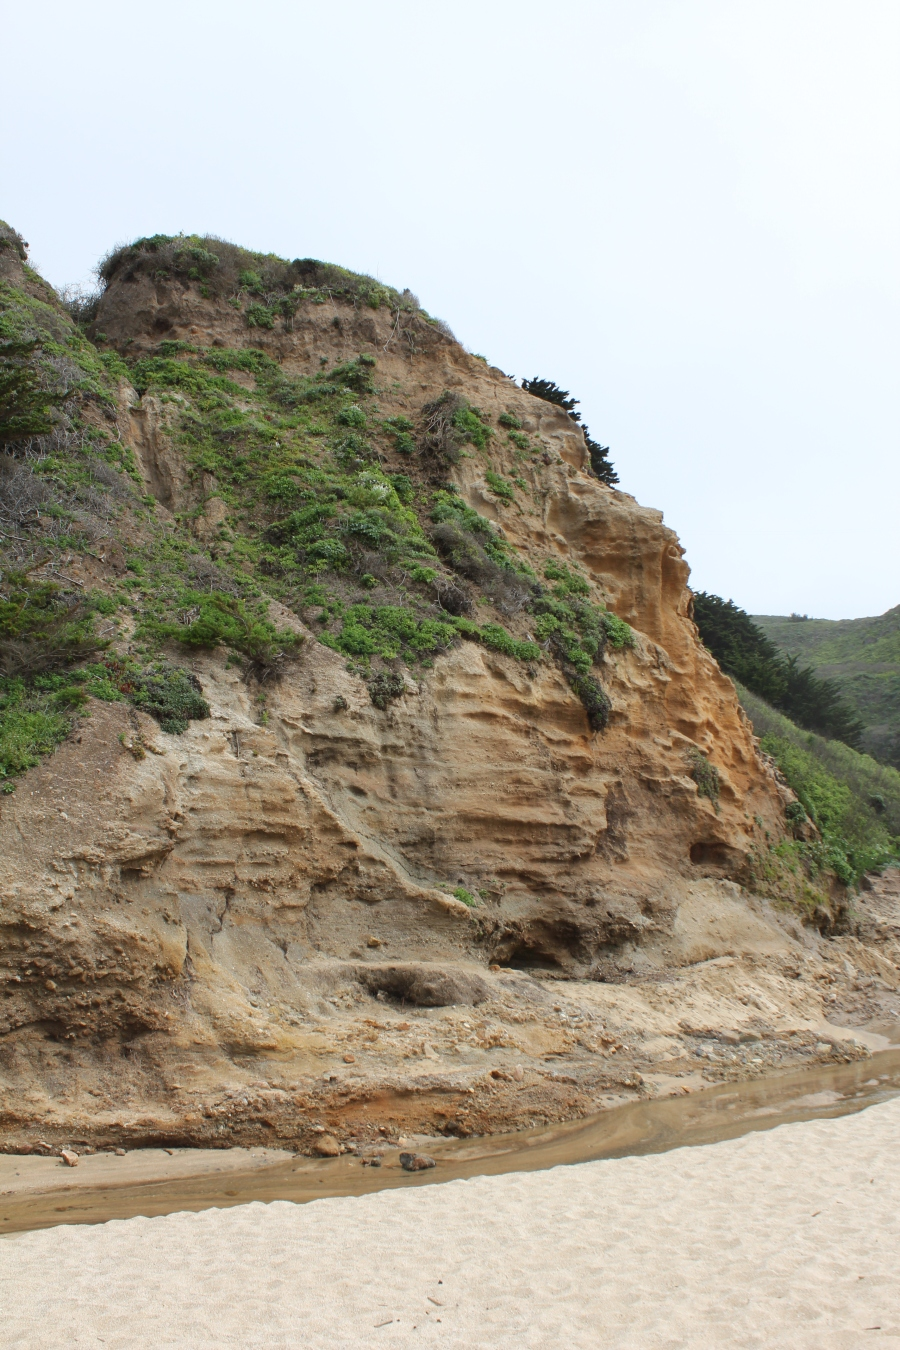 Cliffs surrounding Gray Whale Cove